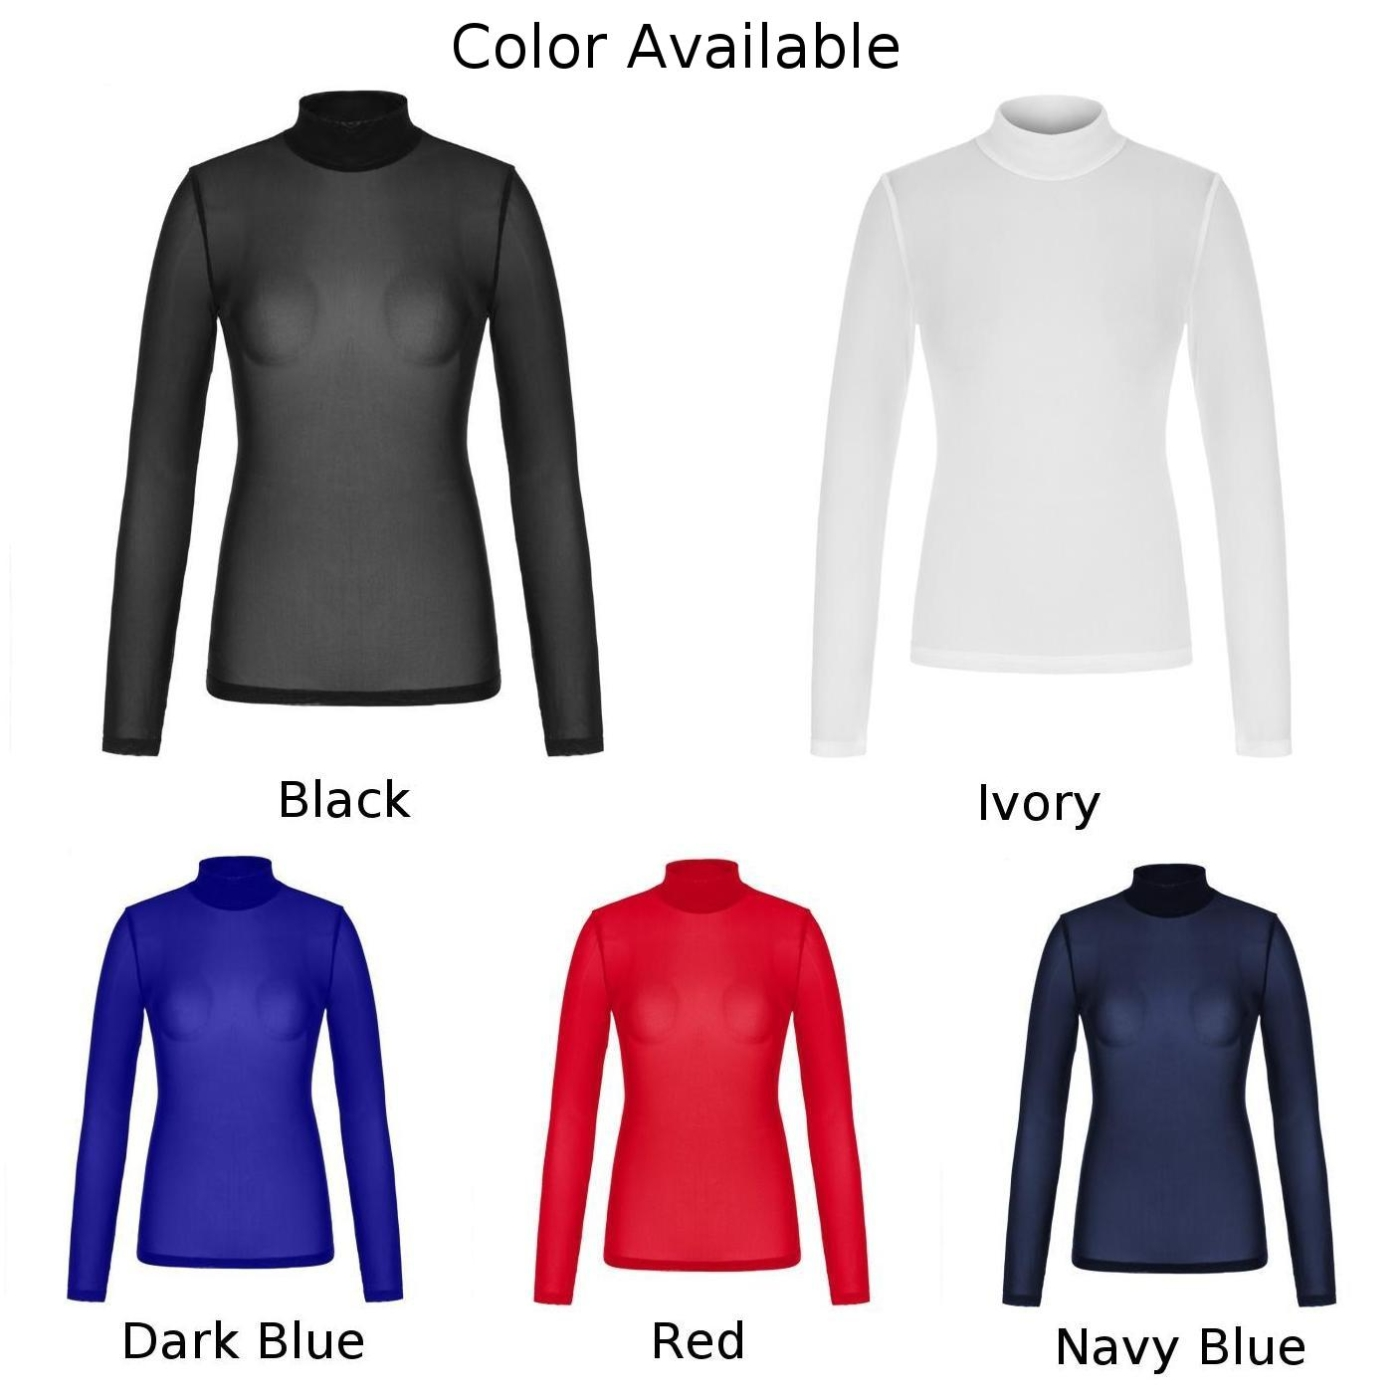 Party Shirt Blouse T shirt Ladies Long sleeve Clubwear Mesh Summer Beach Womens Tops See through Casual New Sexy in T Shirts from Women 39 s Clothing